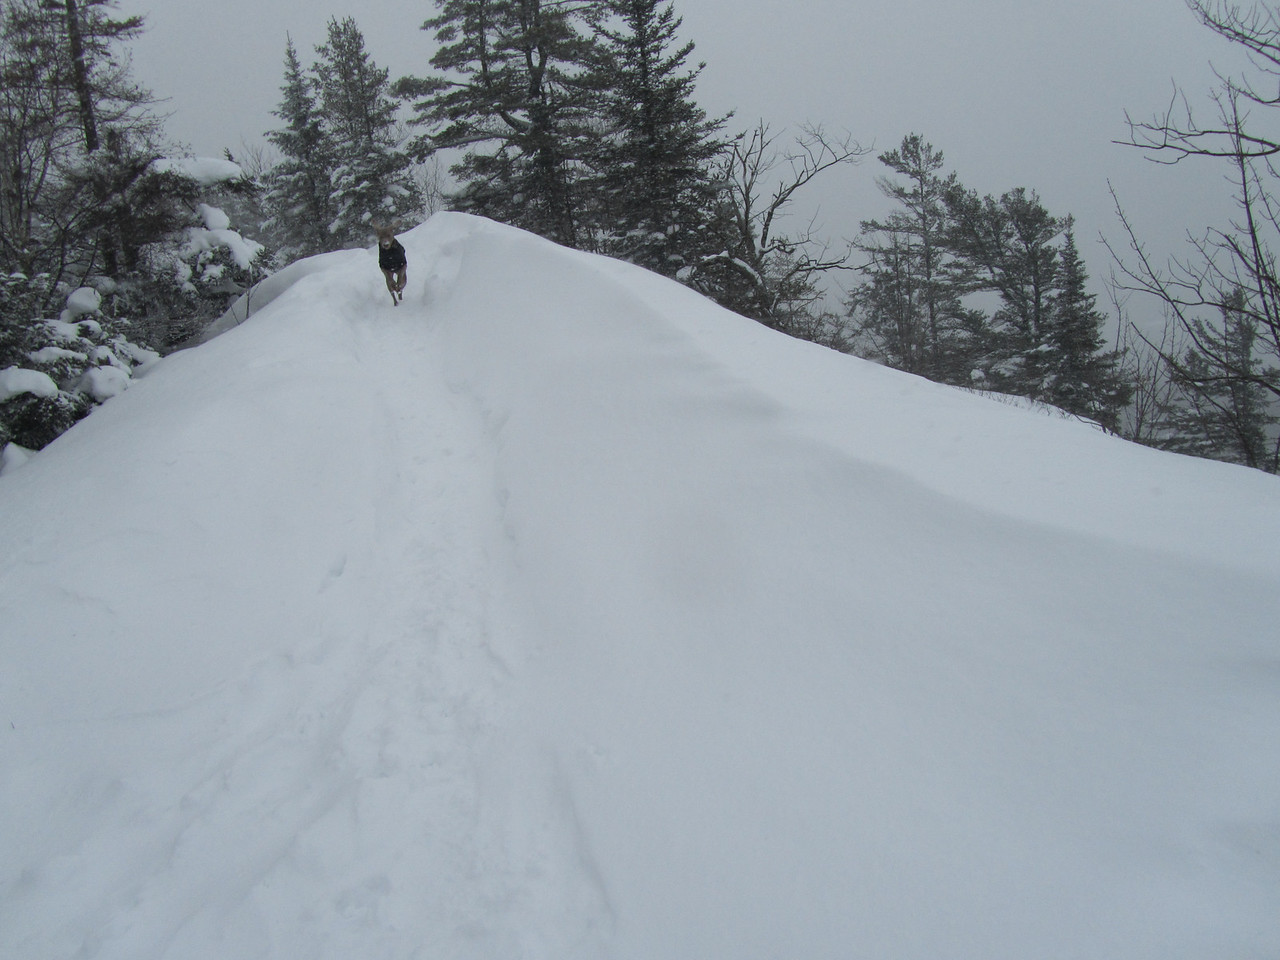 Look at that snow drift! Over 4 feet high.